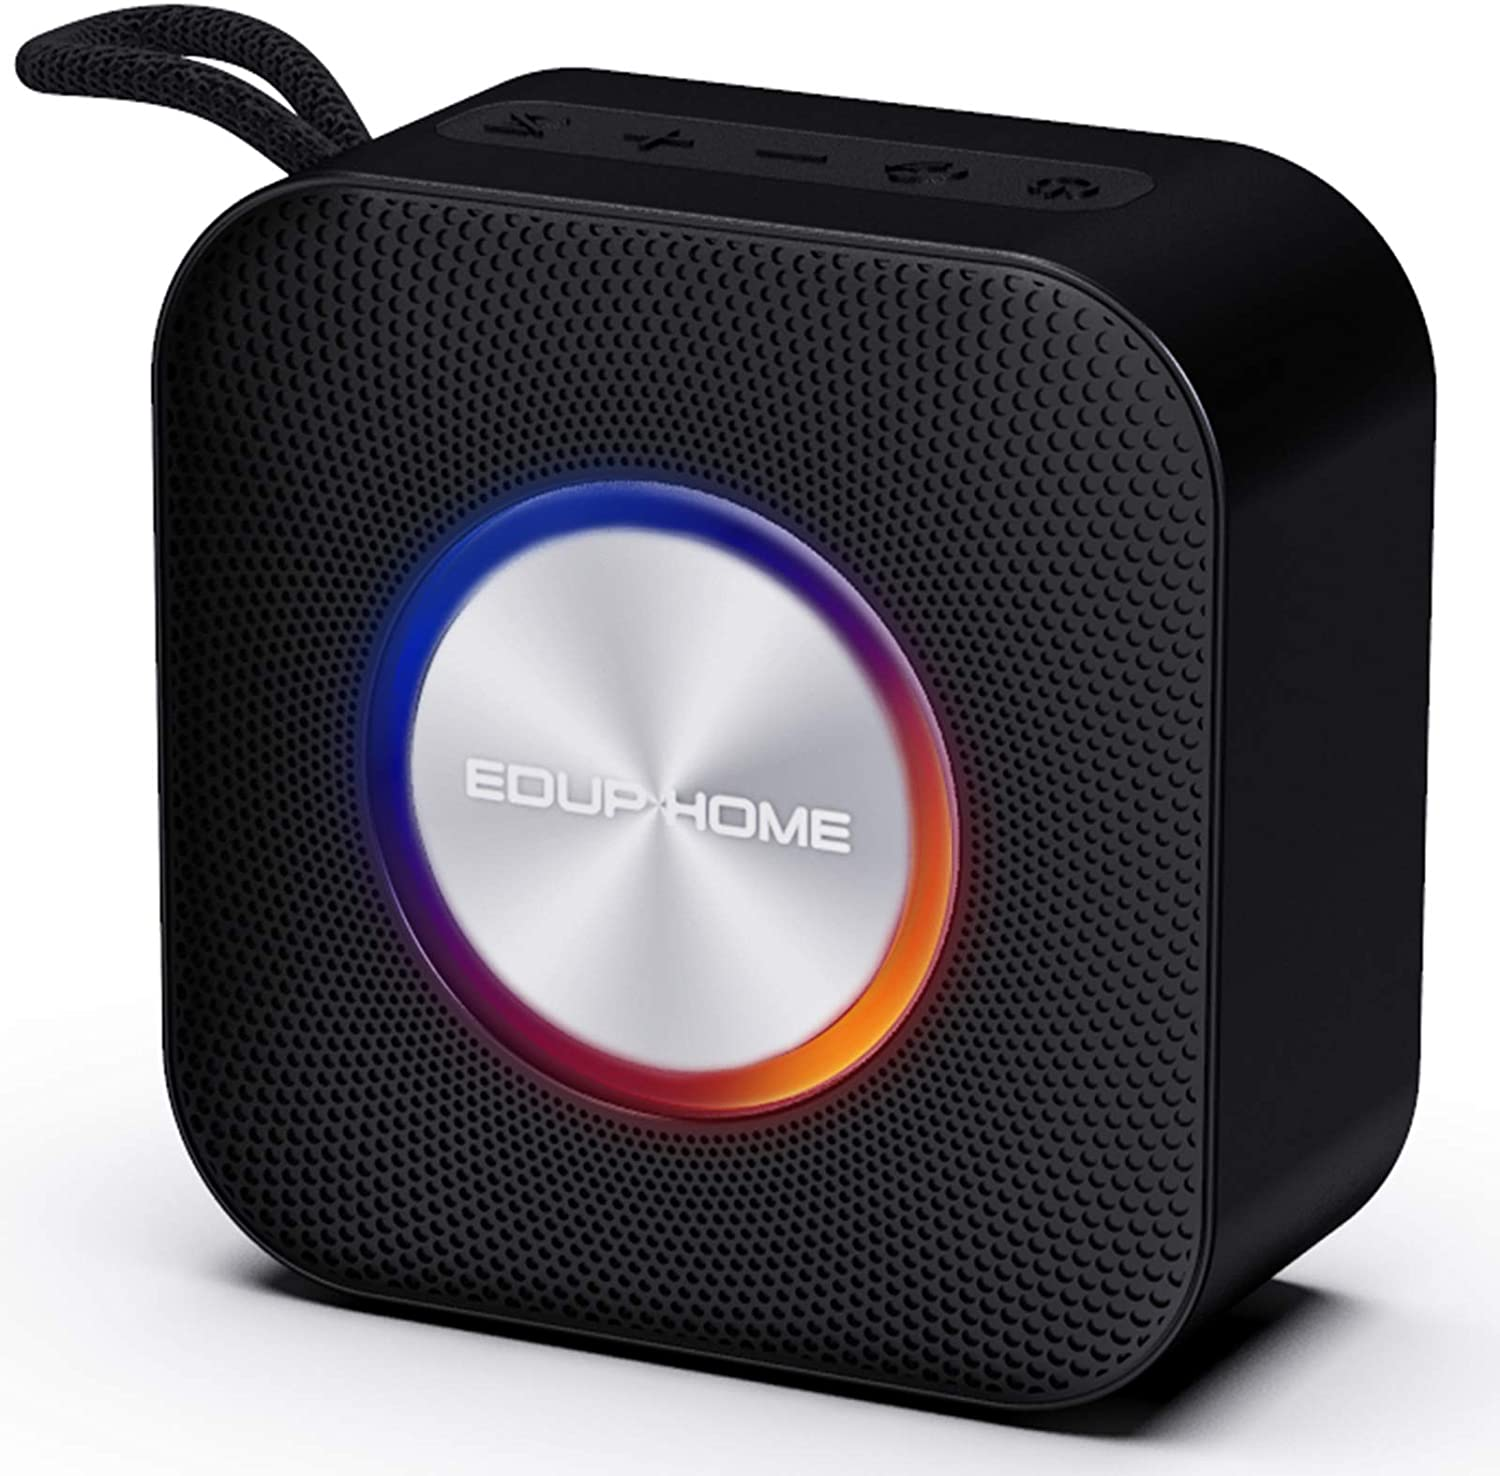 Portable 5.0 Bluetooth Speaker Stereo 15W with Mic Hand Free Call, IPX7 Waterproof Louder Volume 12 H Playtime 80 Ft Wireless Range Speakers with Pulsating Lights for Home Party Music Black